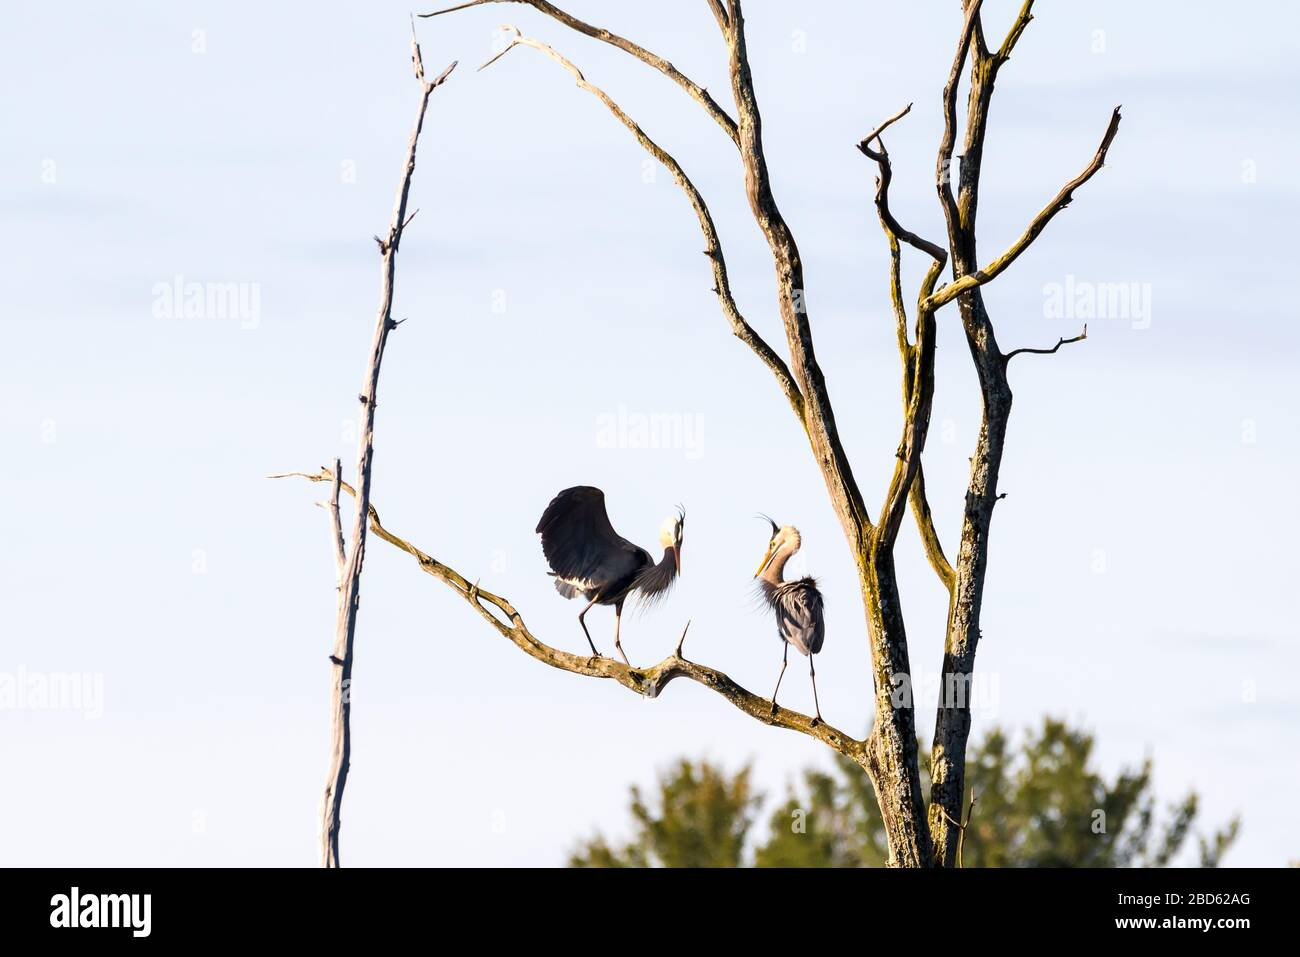 Two Great Blue Herons performing a courtship ritual at the top of a tall tree in a rookery. Stock Photo